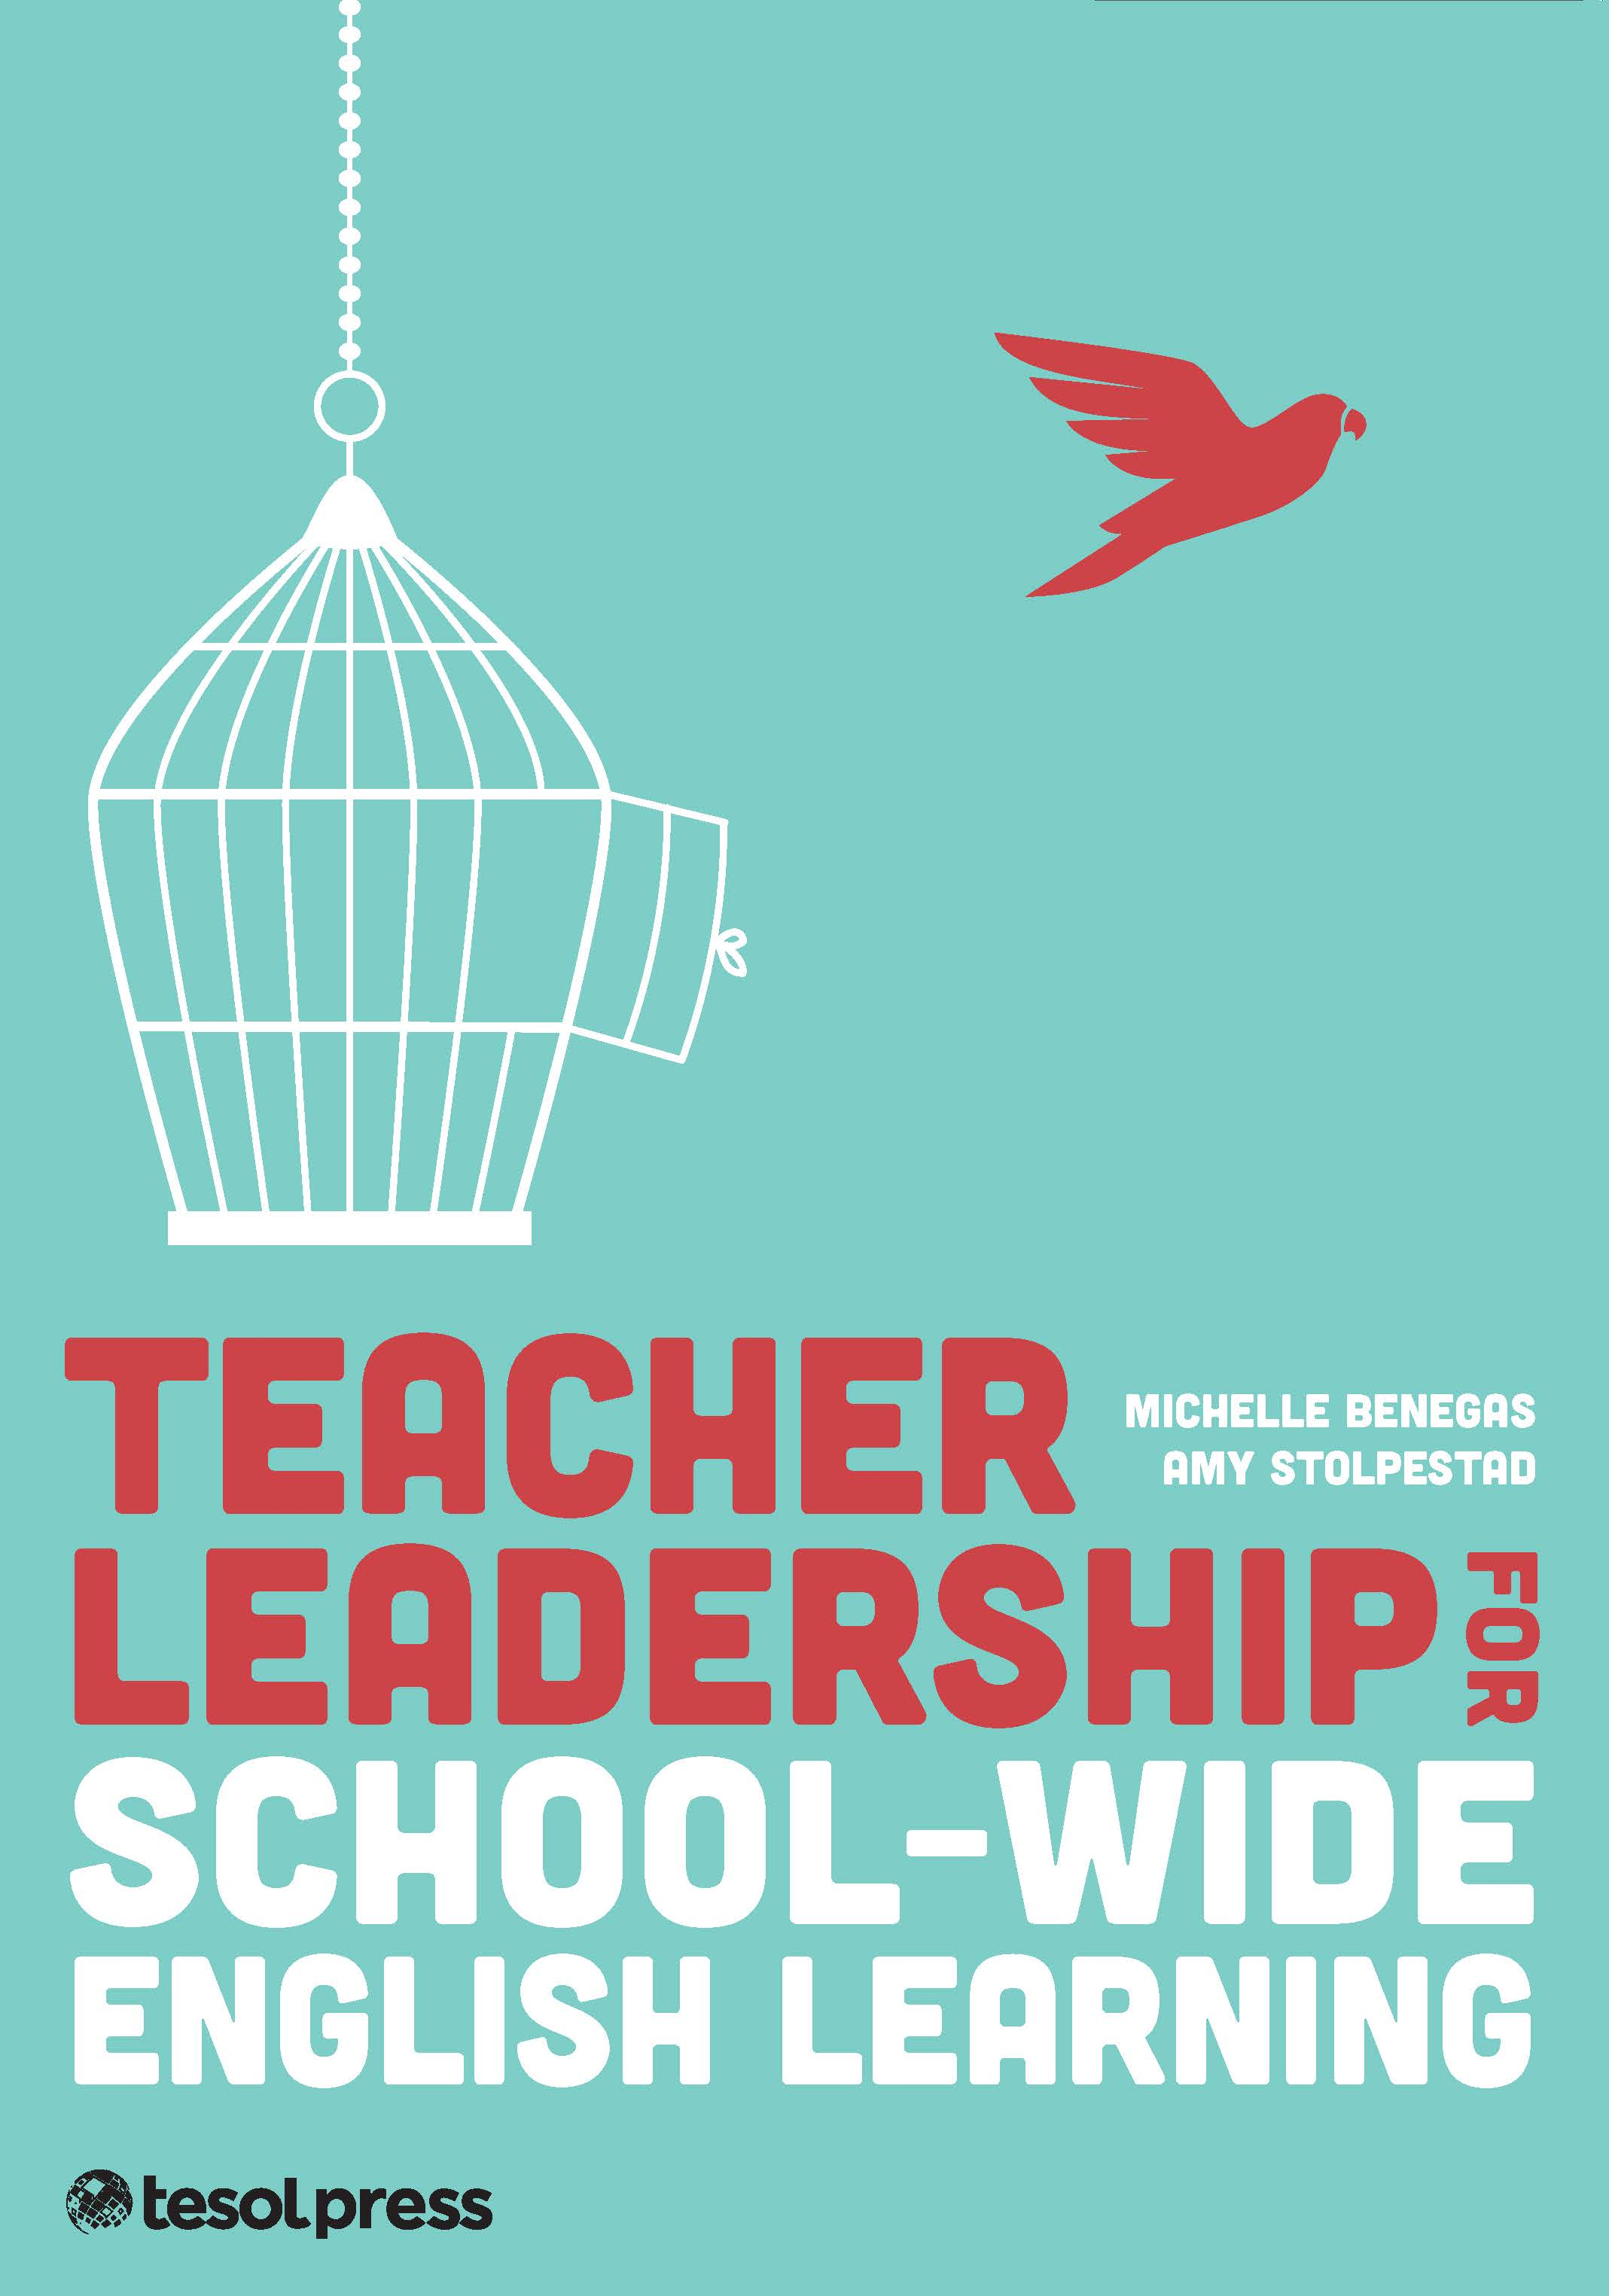 Teacher Leadership for School-Wide English Learning (SWEL) (Paper)